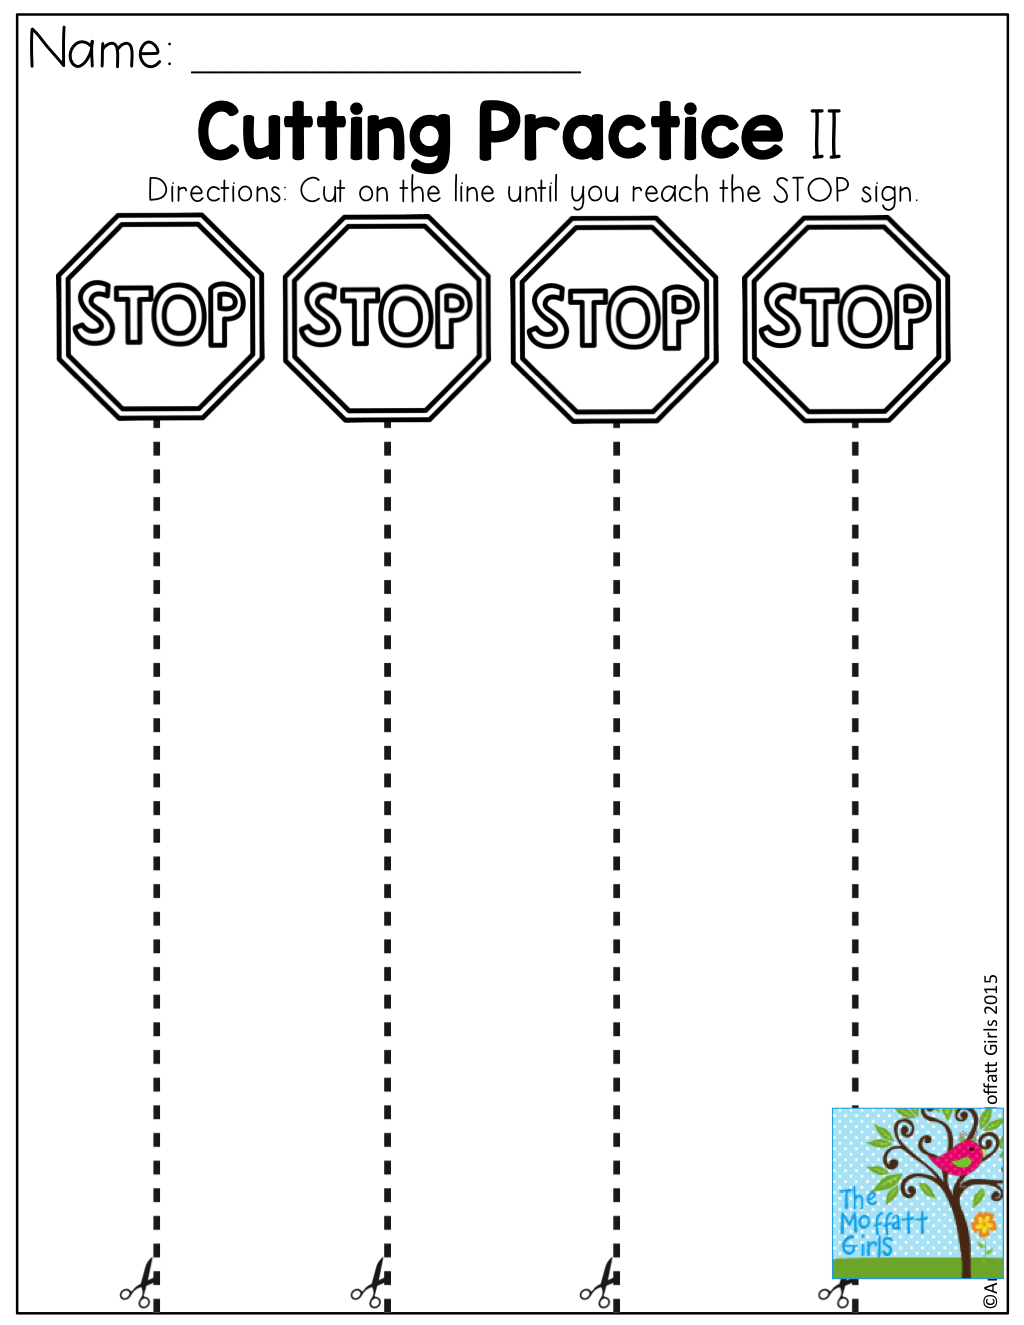 worksheet Preschool Cutting Worksheets cutting practice tons of fun effective and hands on resources for pre